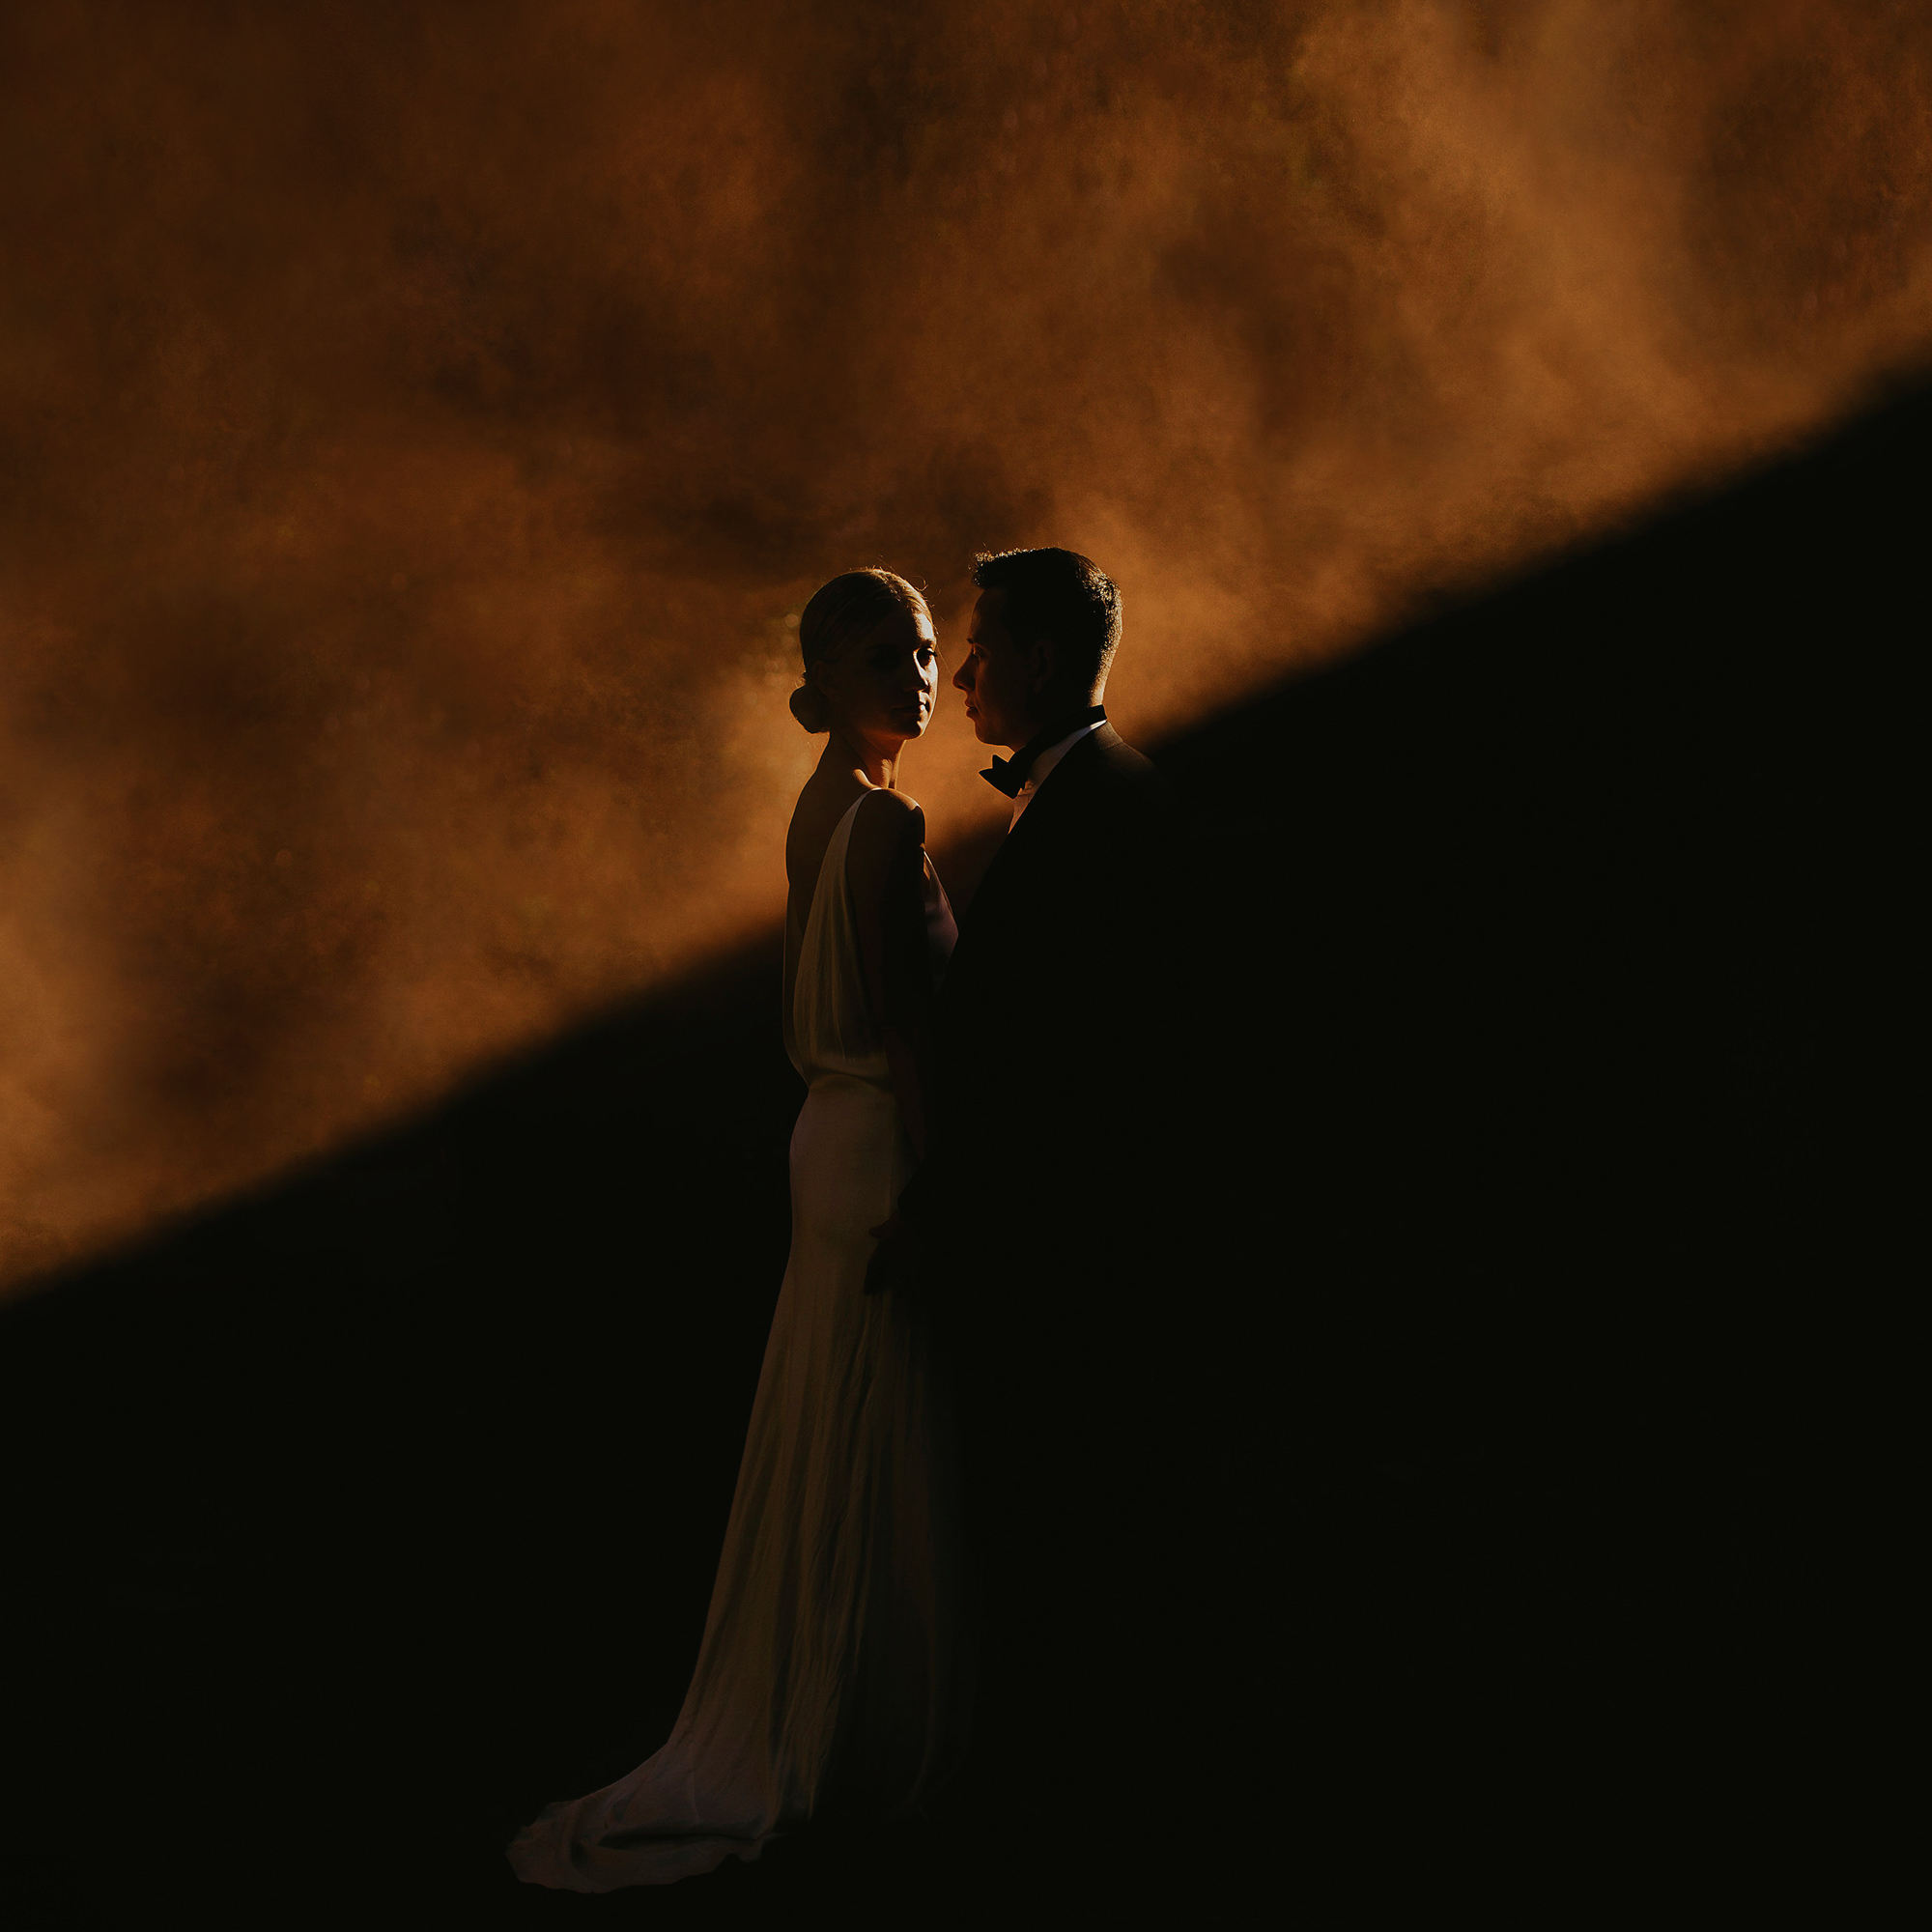 Dramatic portrait of bride and groom by Dan O'Day